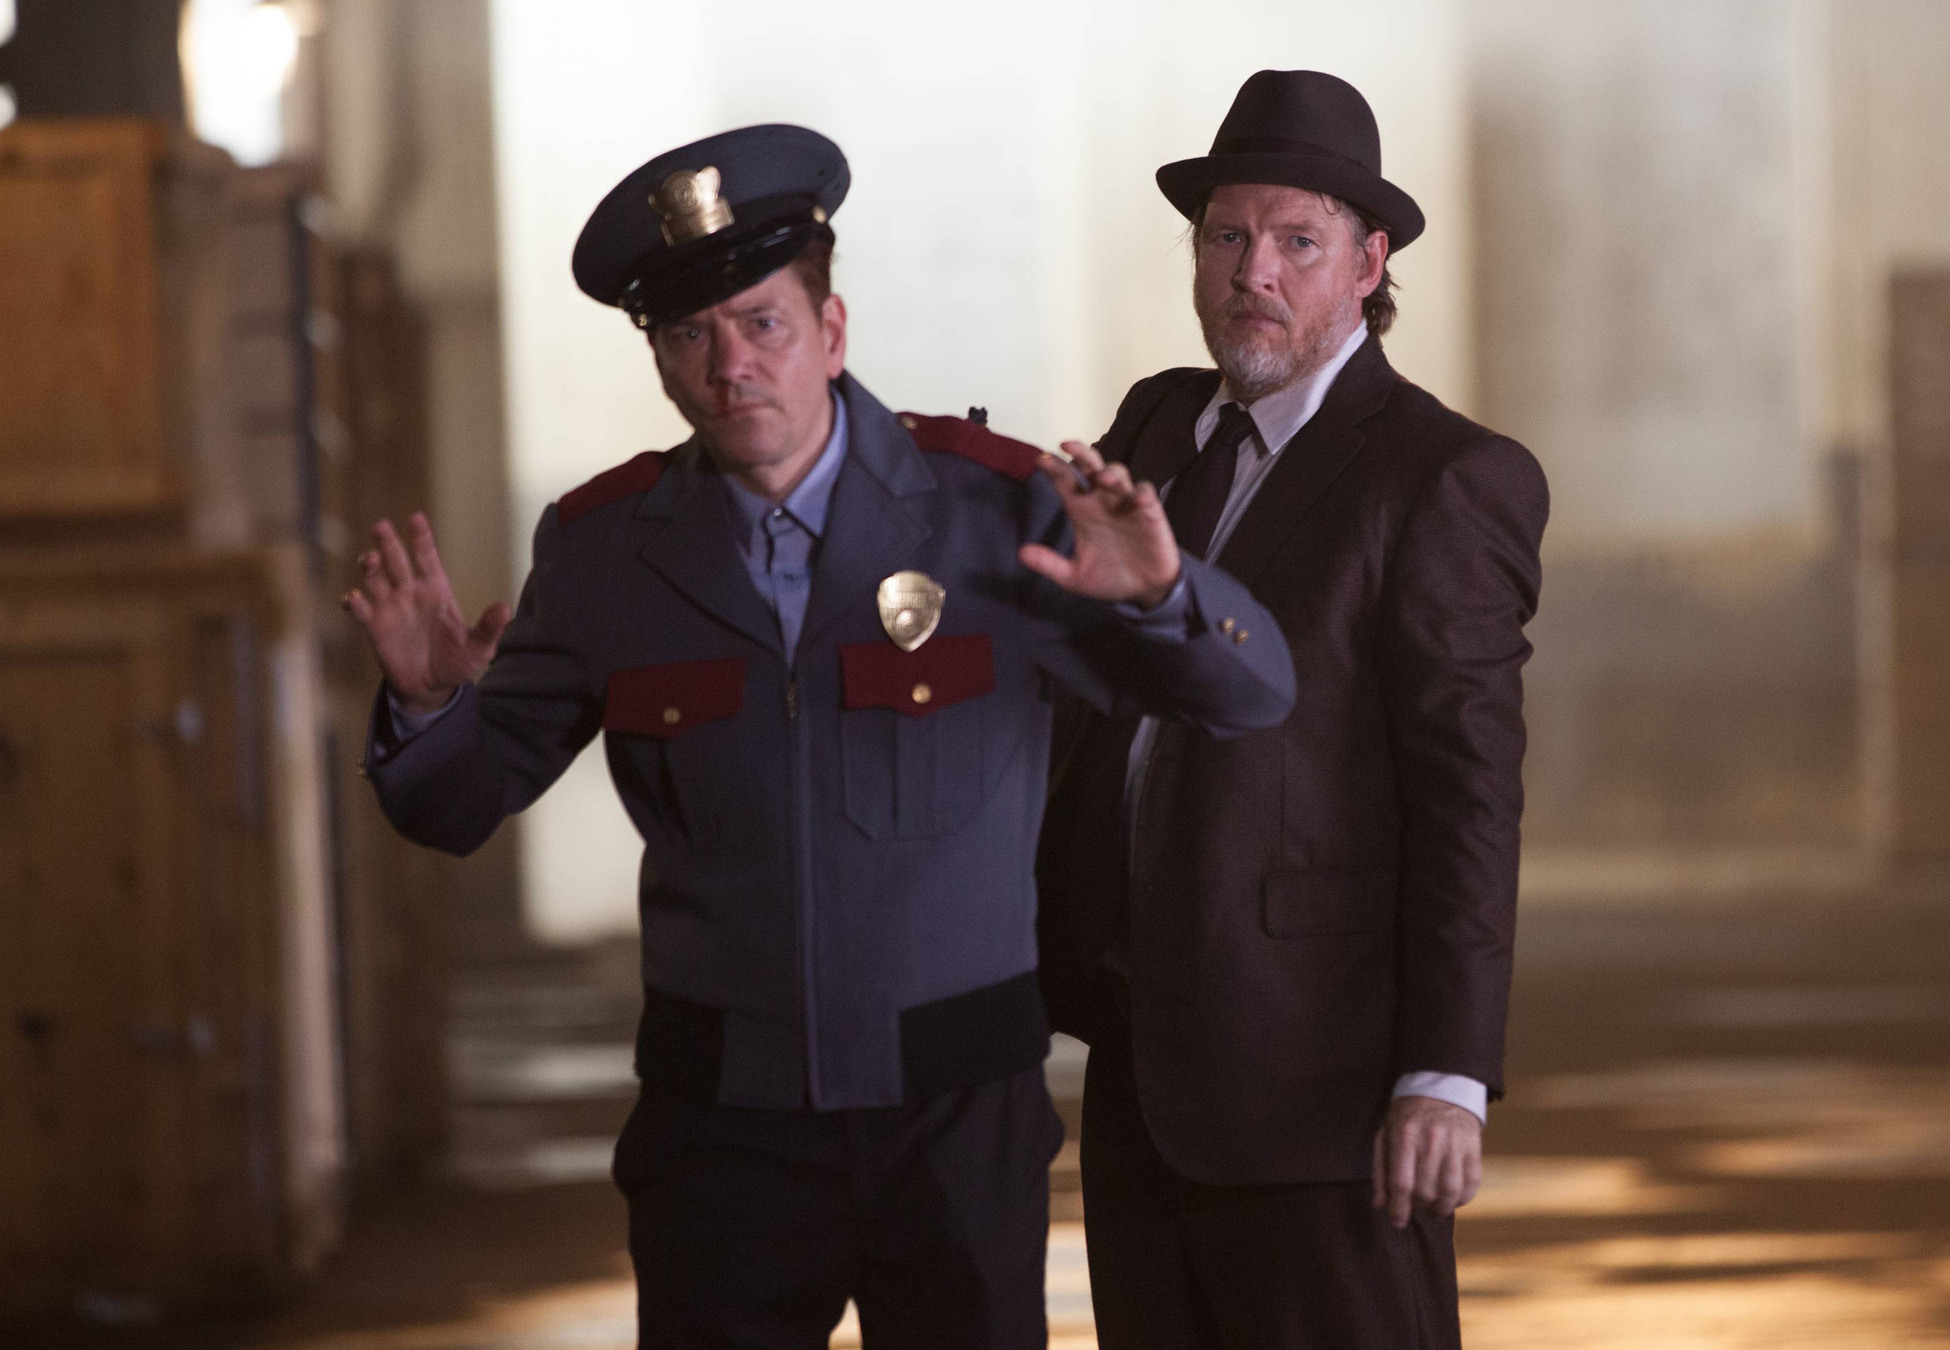 """GOTHAM: Bullock (Donal Logue, R) apprehends a suspect (guest star Frank Whaley, L) in the """"Selina Kyle"""" episode of GOTHAM airing Monday, Sept. 29 (8:00-9:00 PM ET/PT) on FOX. ©2014 Fox Broadcasting Co. Cr: Jessica Miglio/FOX"""